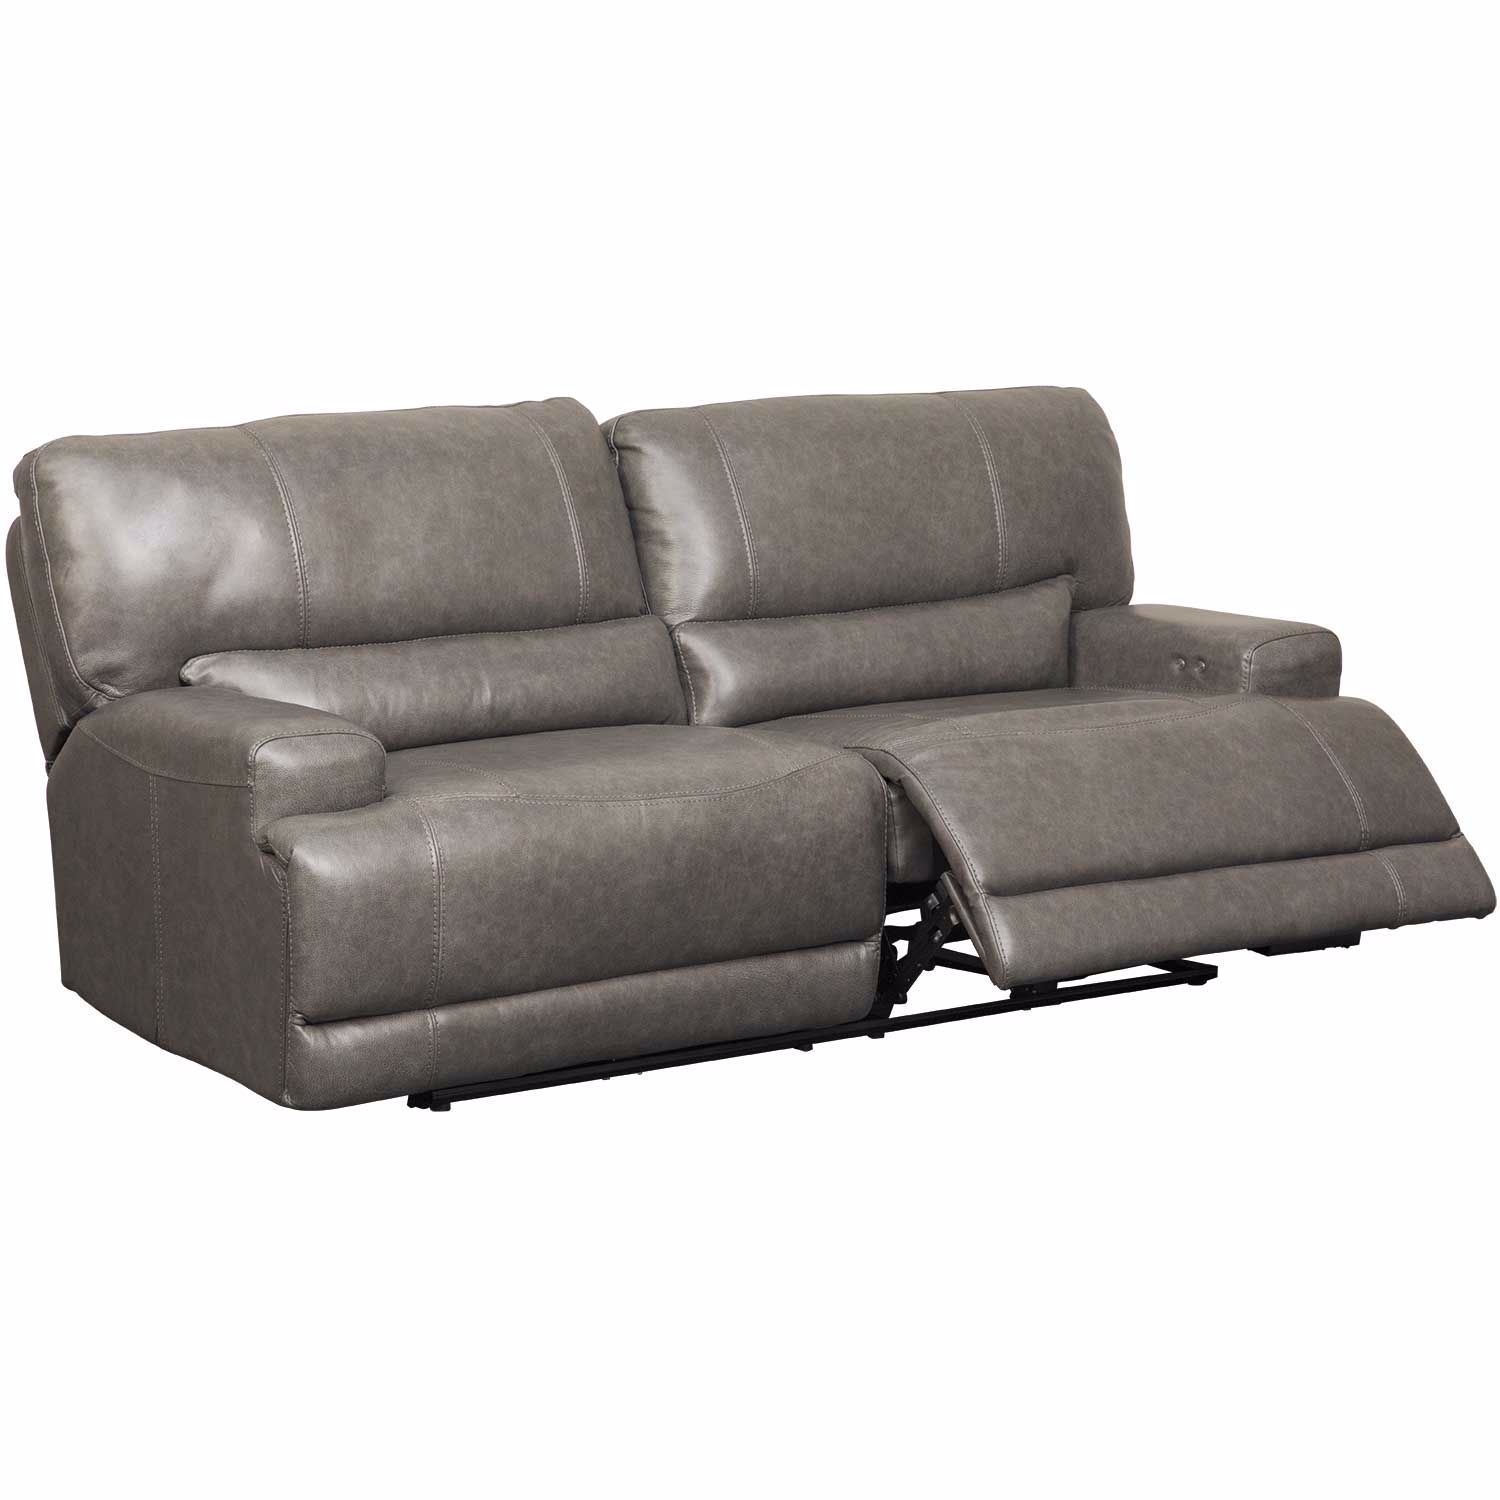 Picture of Jax Gray Leather Power Recline Sofa